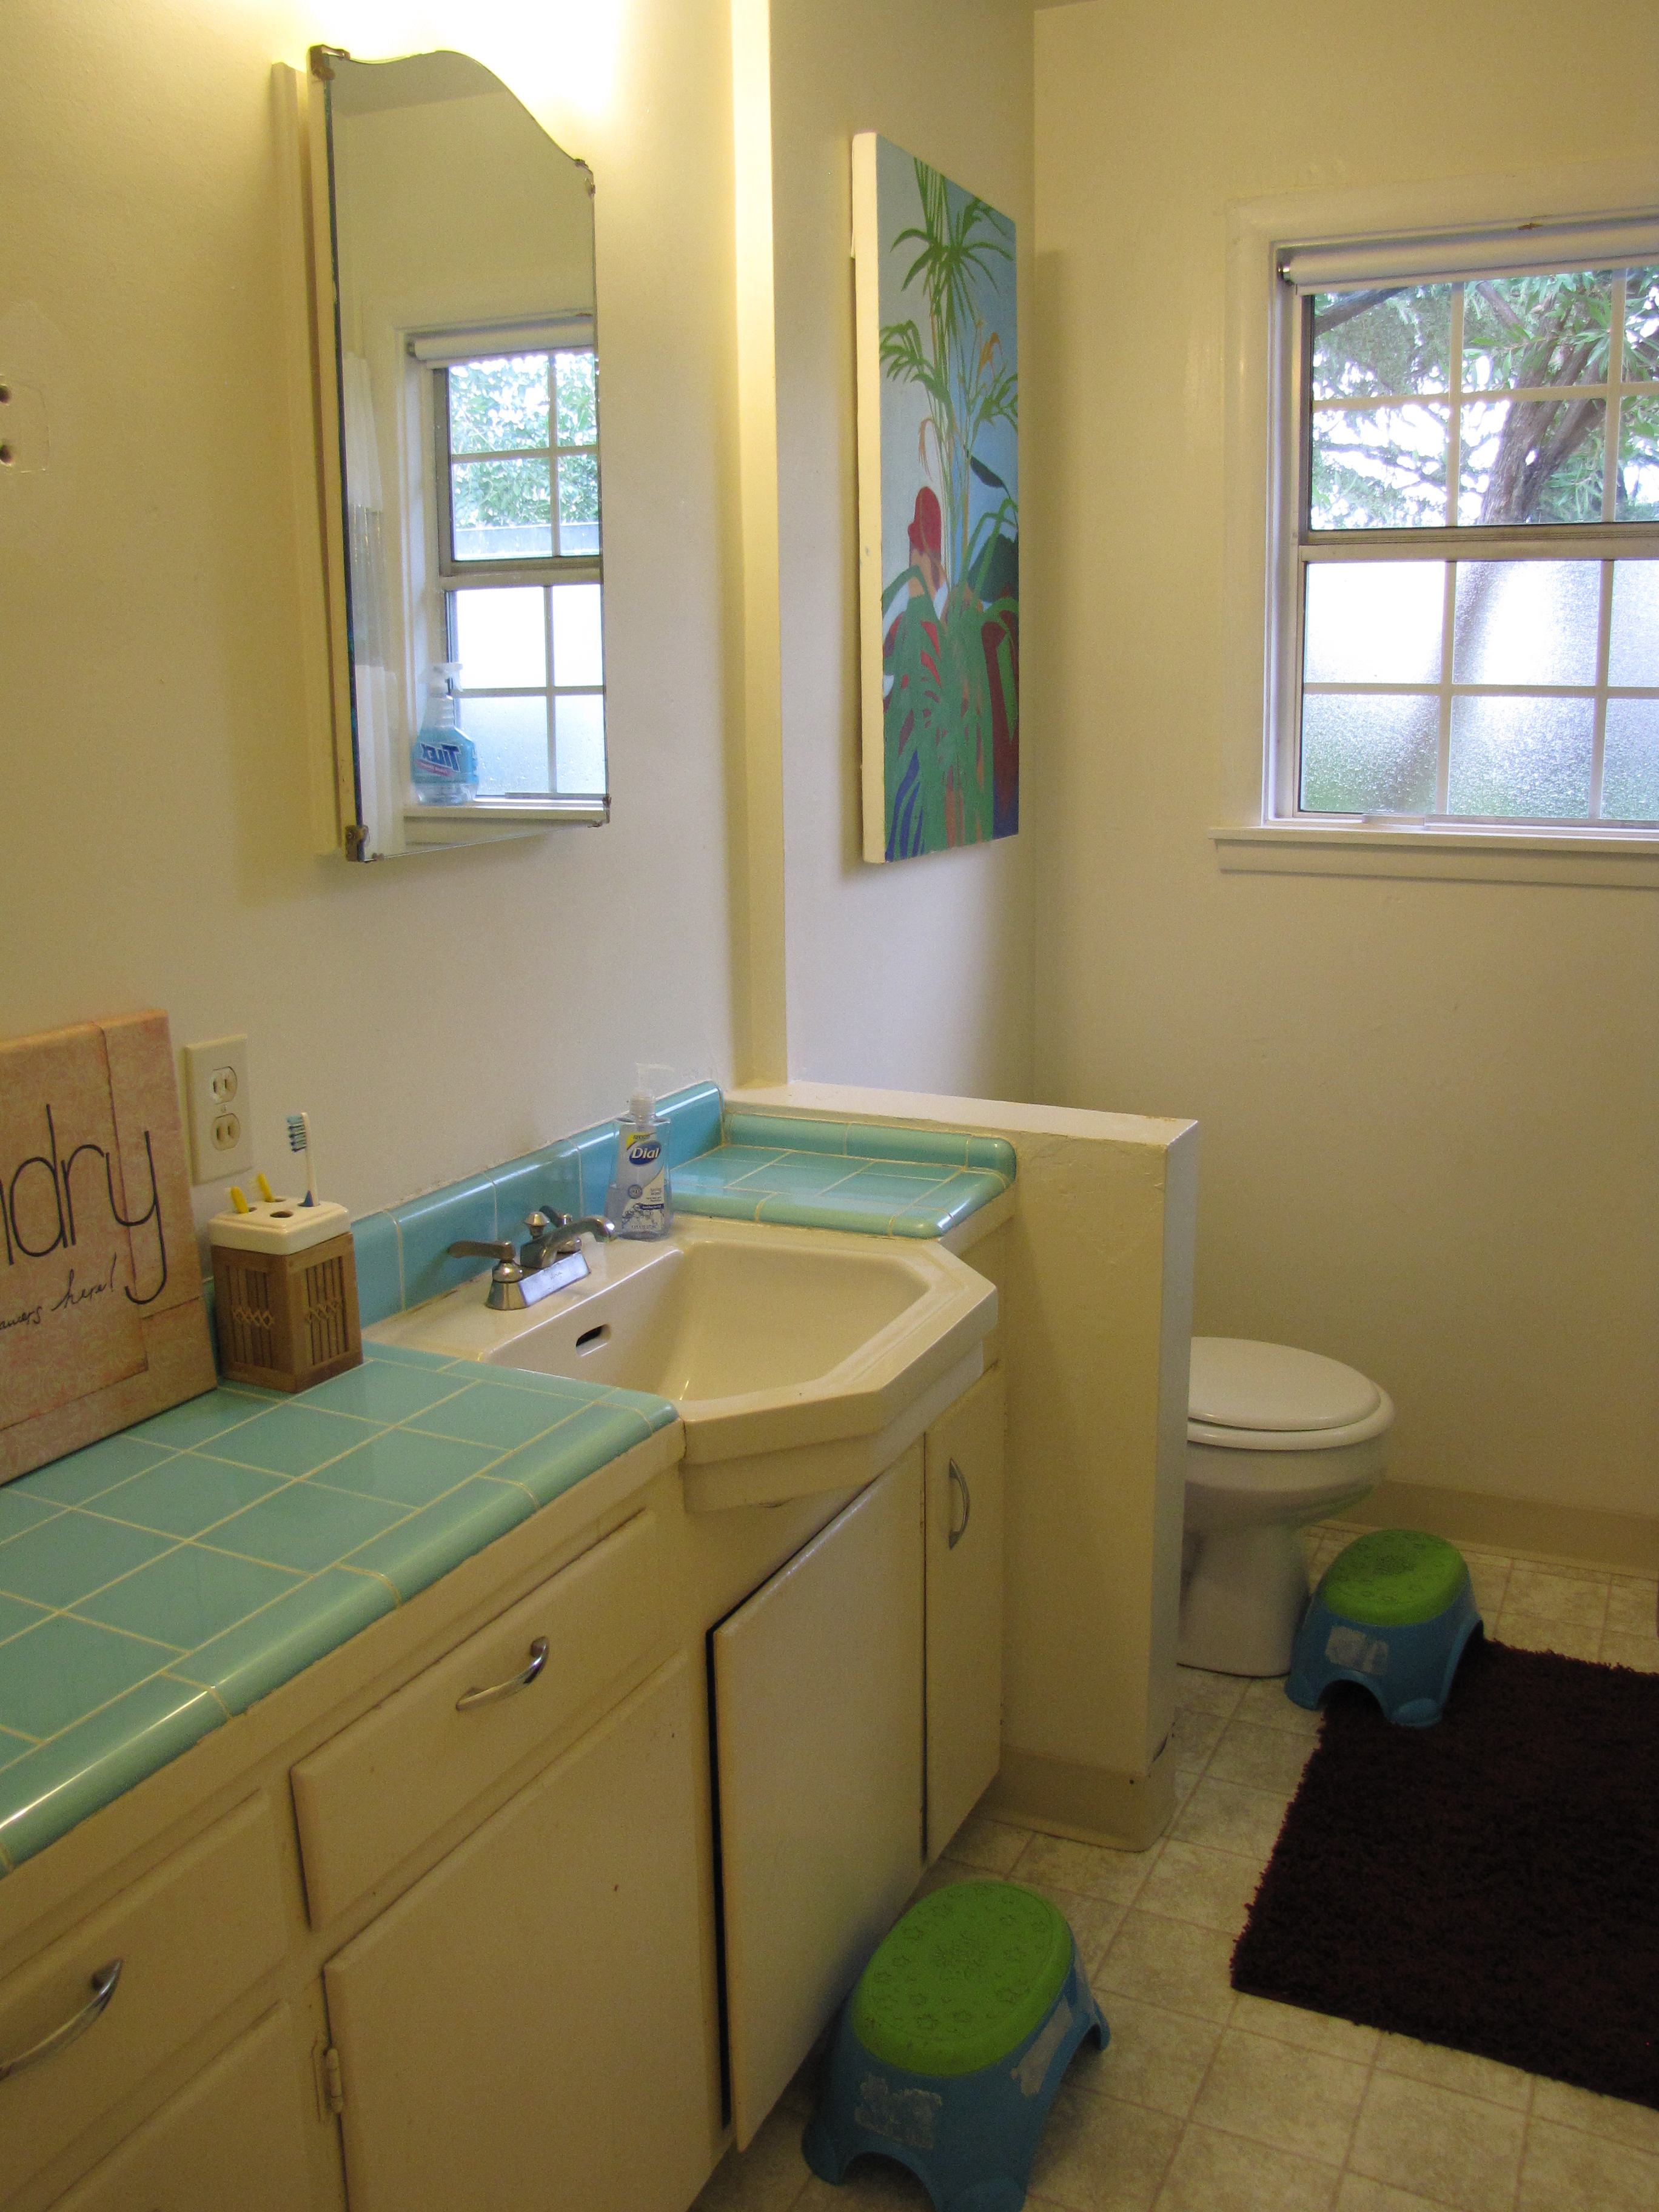 Inexpensive Ways Ive Updated Our Bathroom The Abundant Wife - Cheap ways to update bathroom